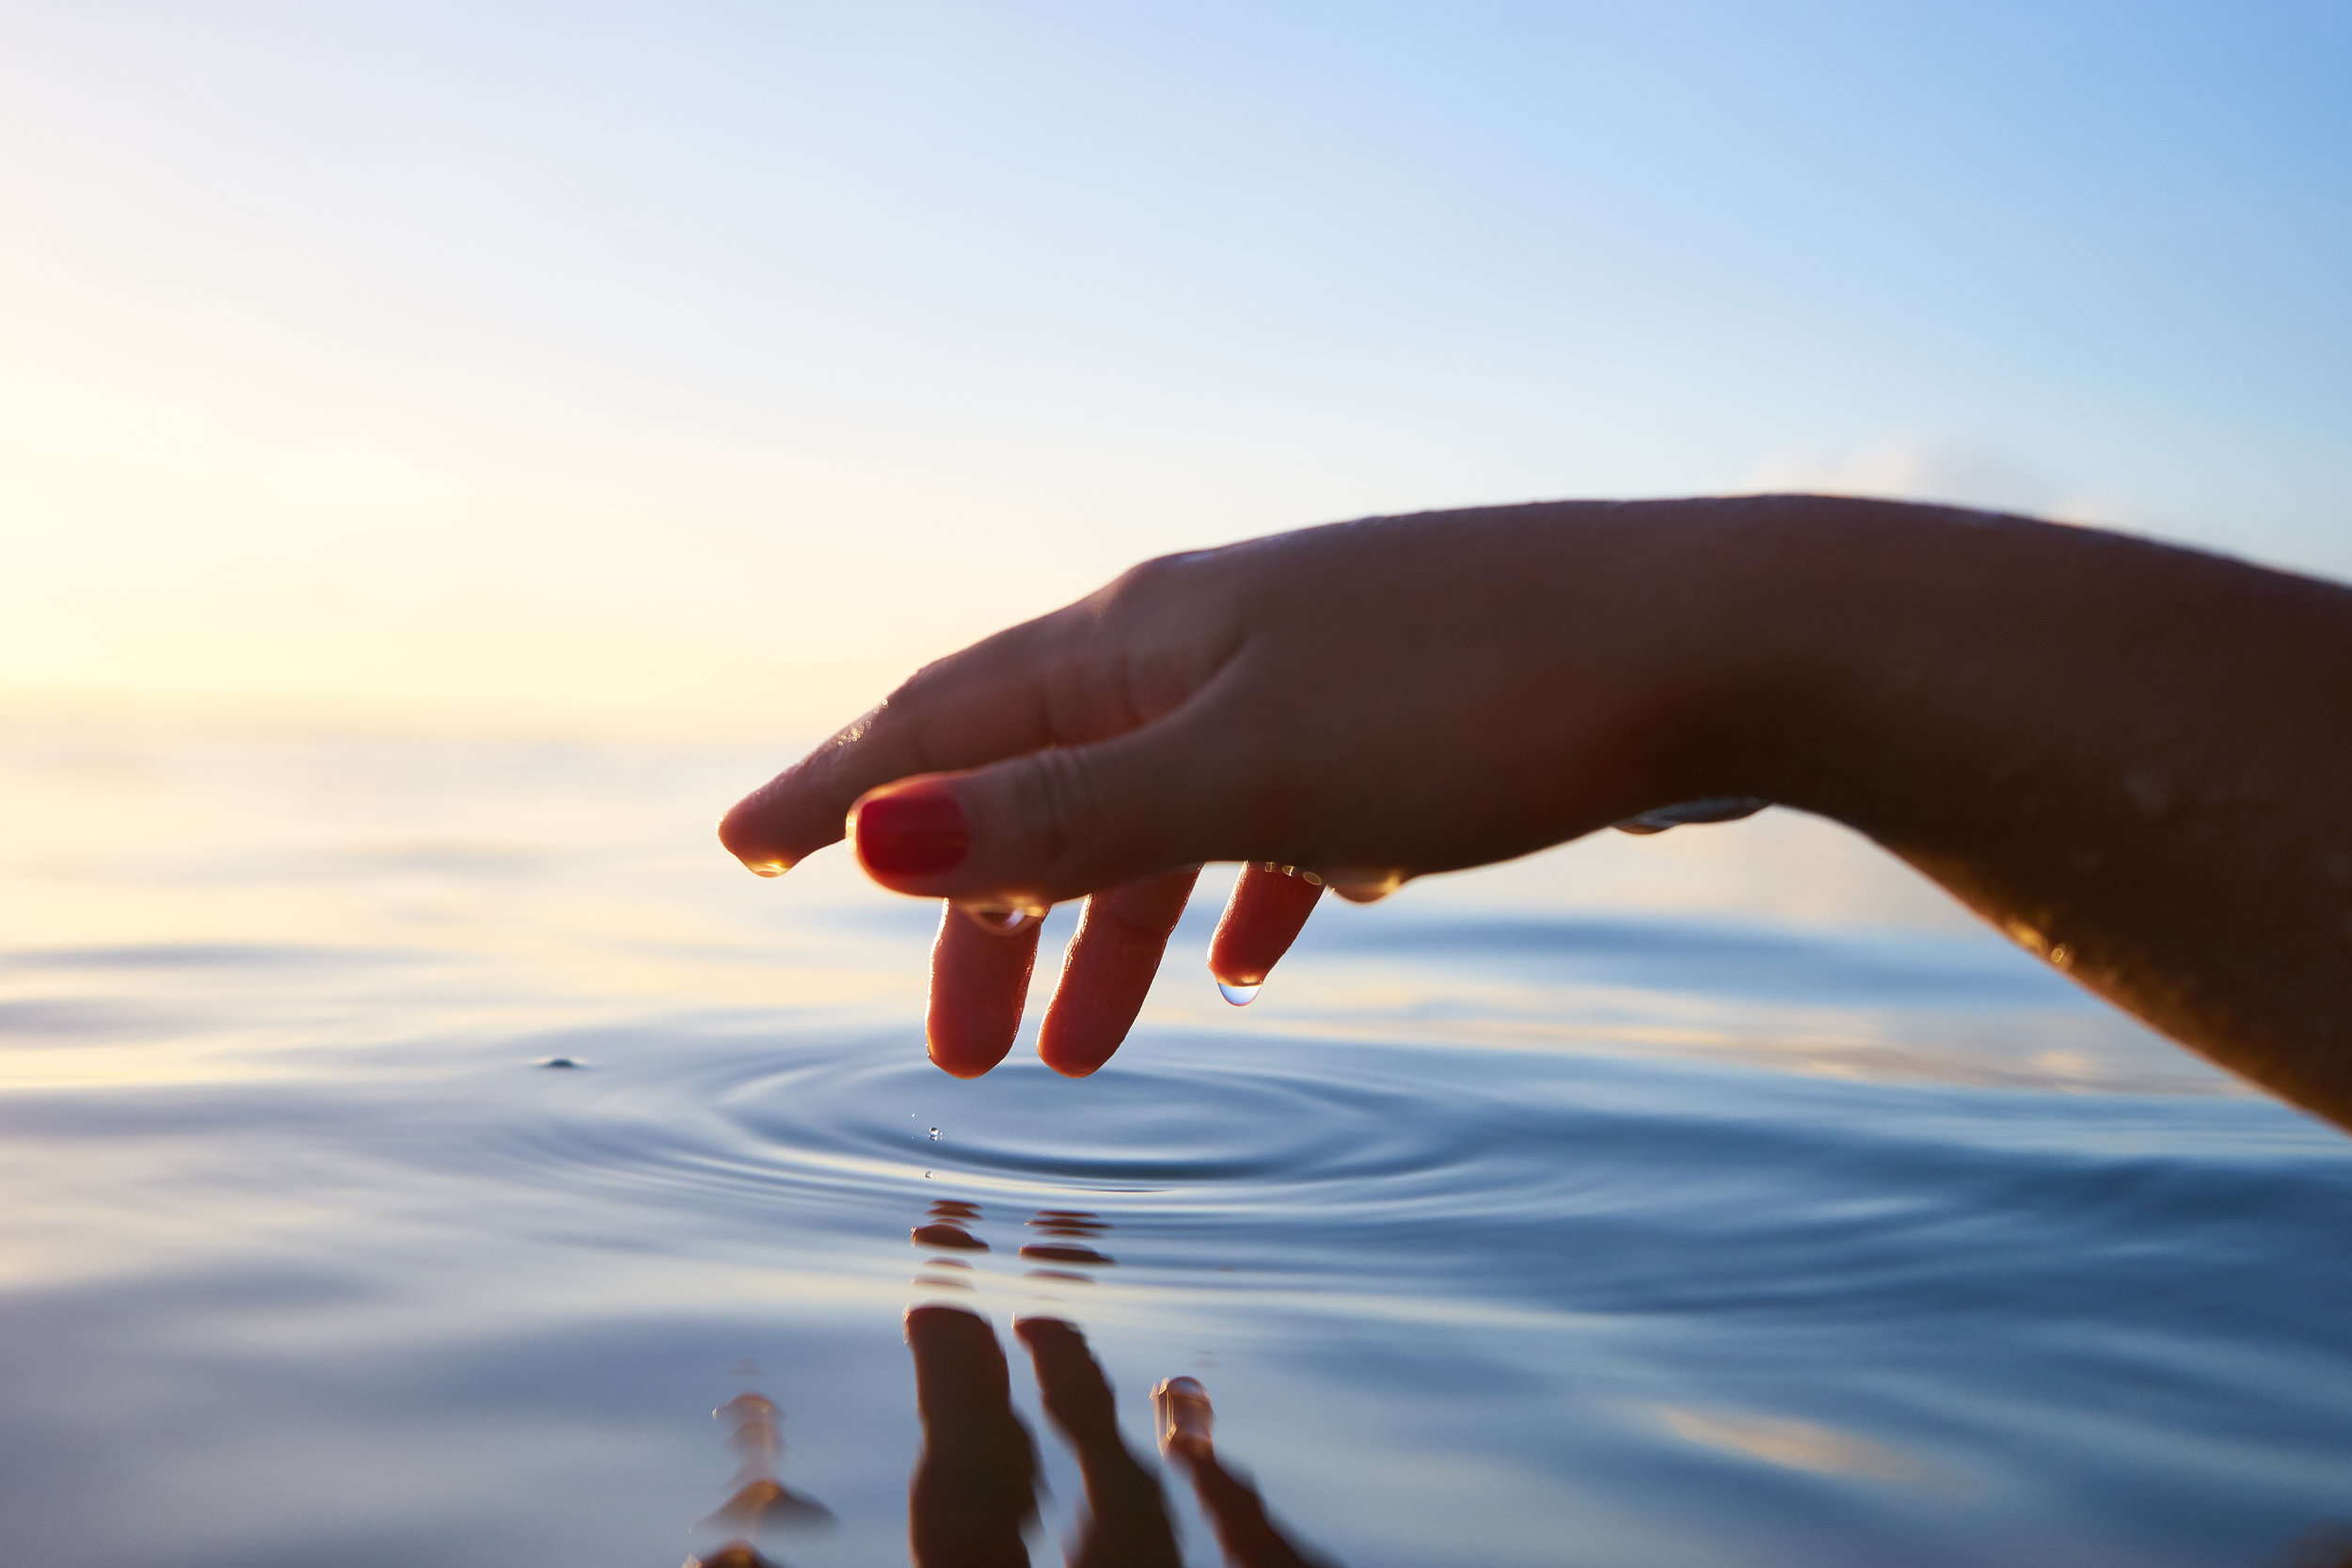 What is Reiki - Reiki 靈氣 (ray-key) is a Japanese healing art of channeling energy through the palms of the hands. In essence, it's like a deep energetic massage.